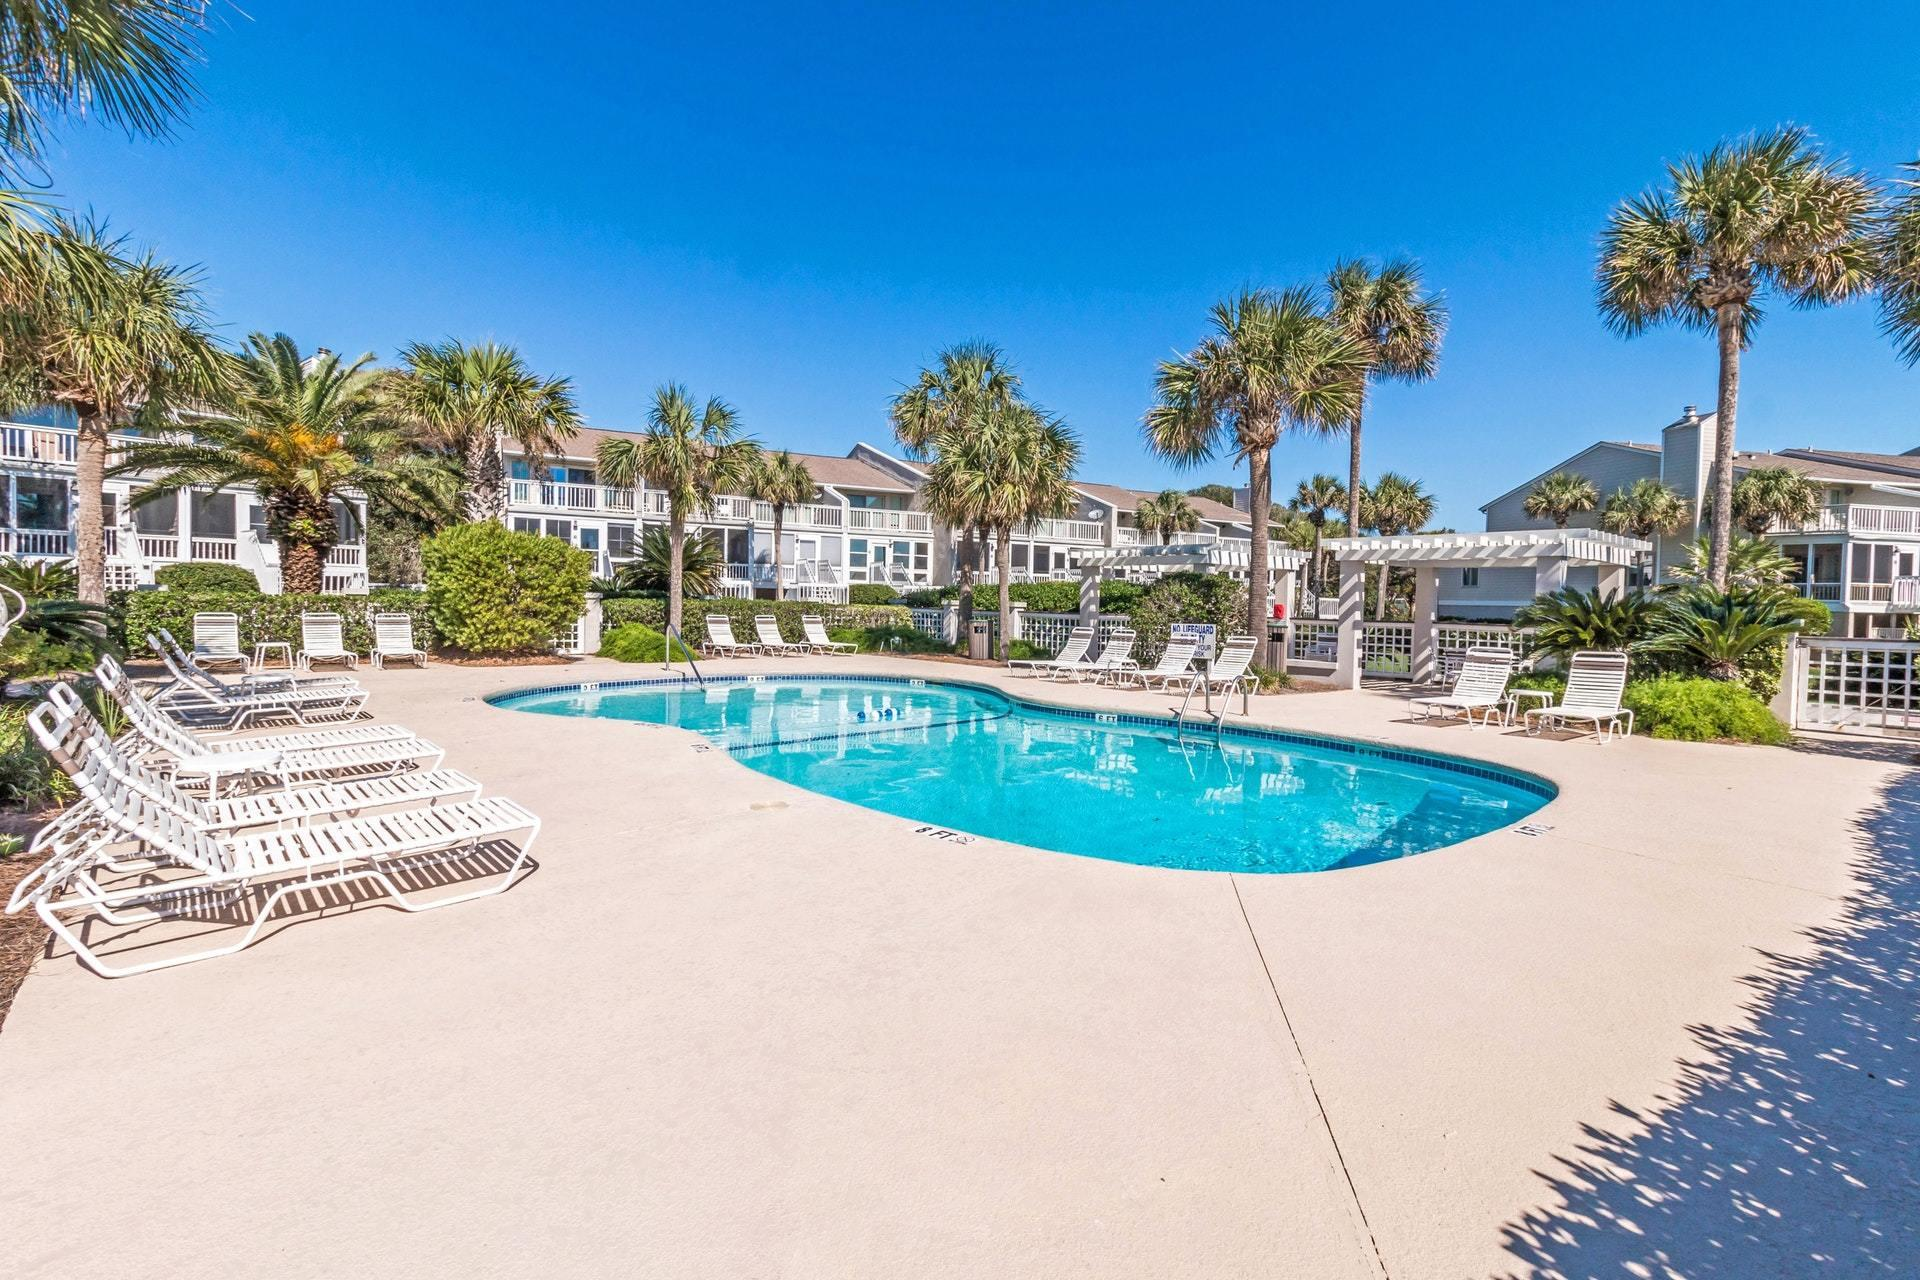 Beach Club Villas Homes For Sale - 51 Beach Club Villas, Isle of Palms, SC - 29